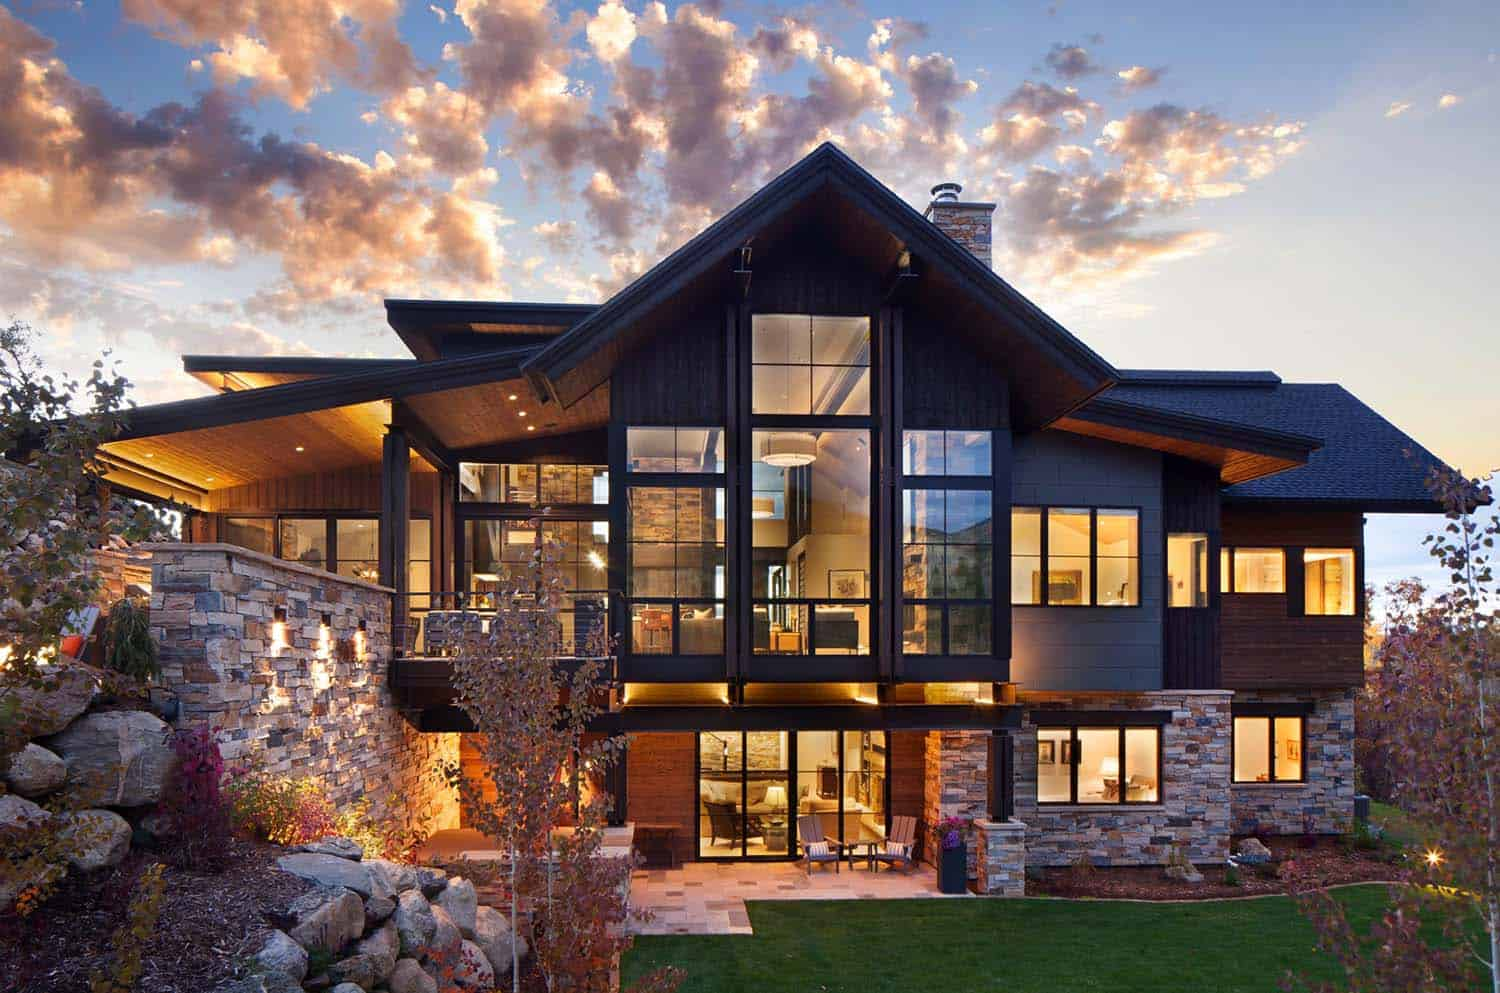 Modern home design Floor Plan Contemporaryhomedesignverticalartsarchitecture021 Sopieco Breathtaking Contemporary Mountain Home In Steamboat Springs